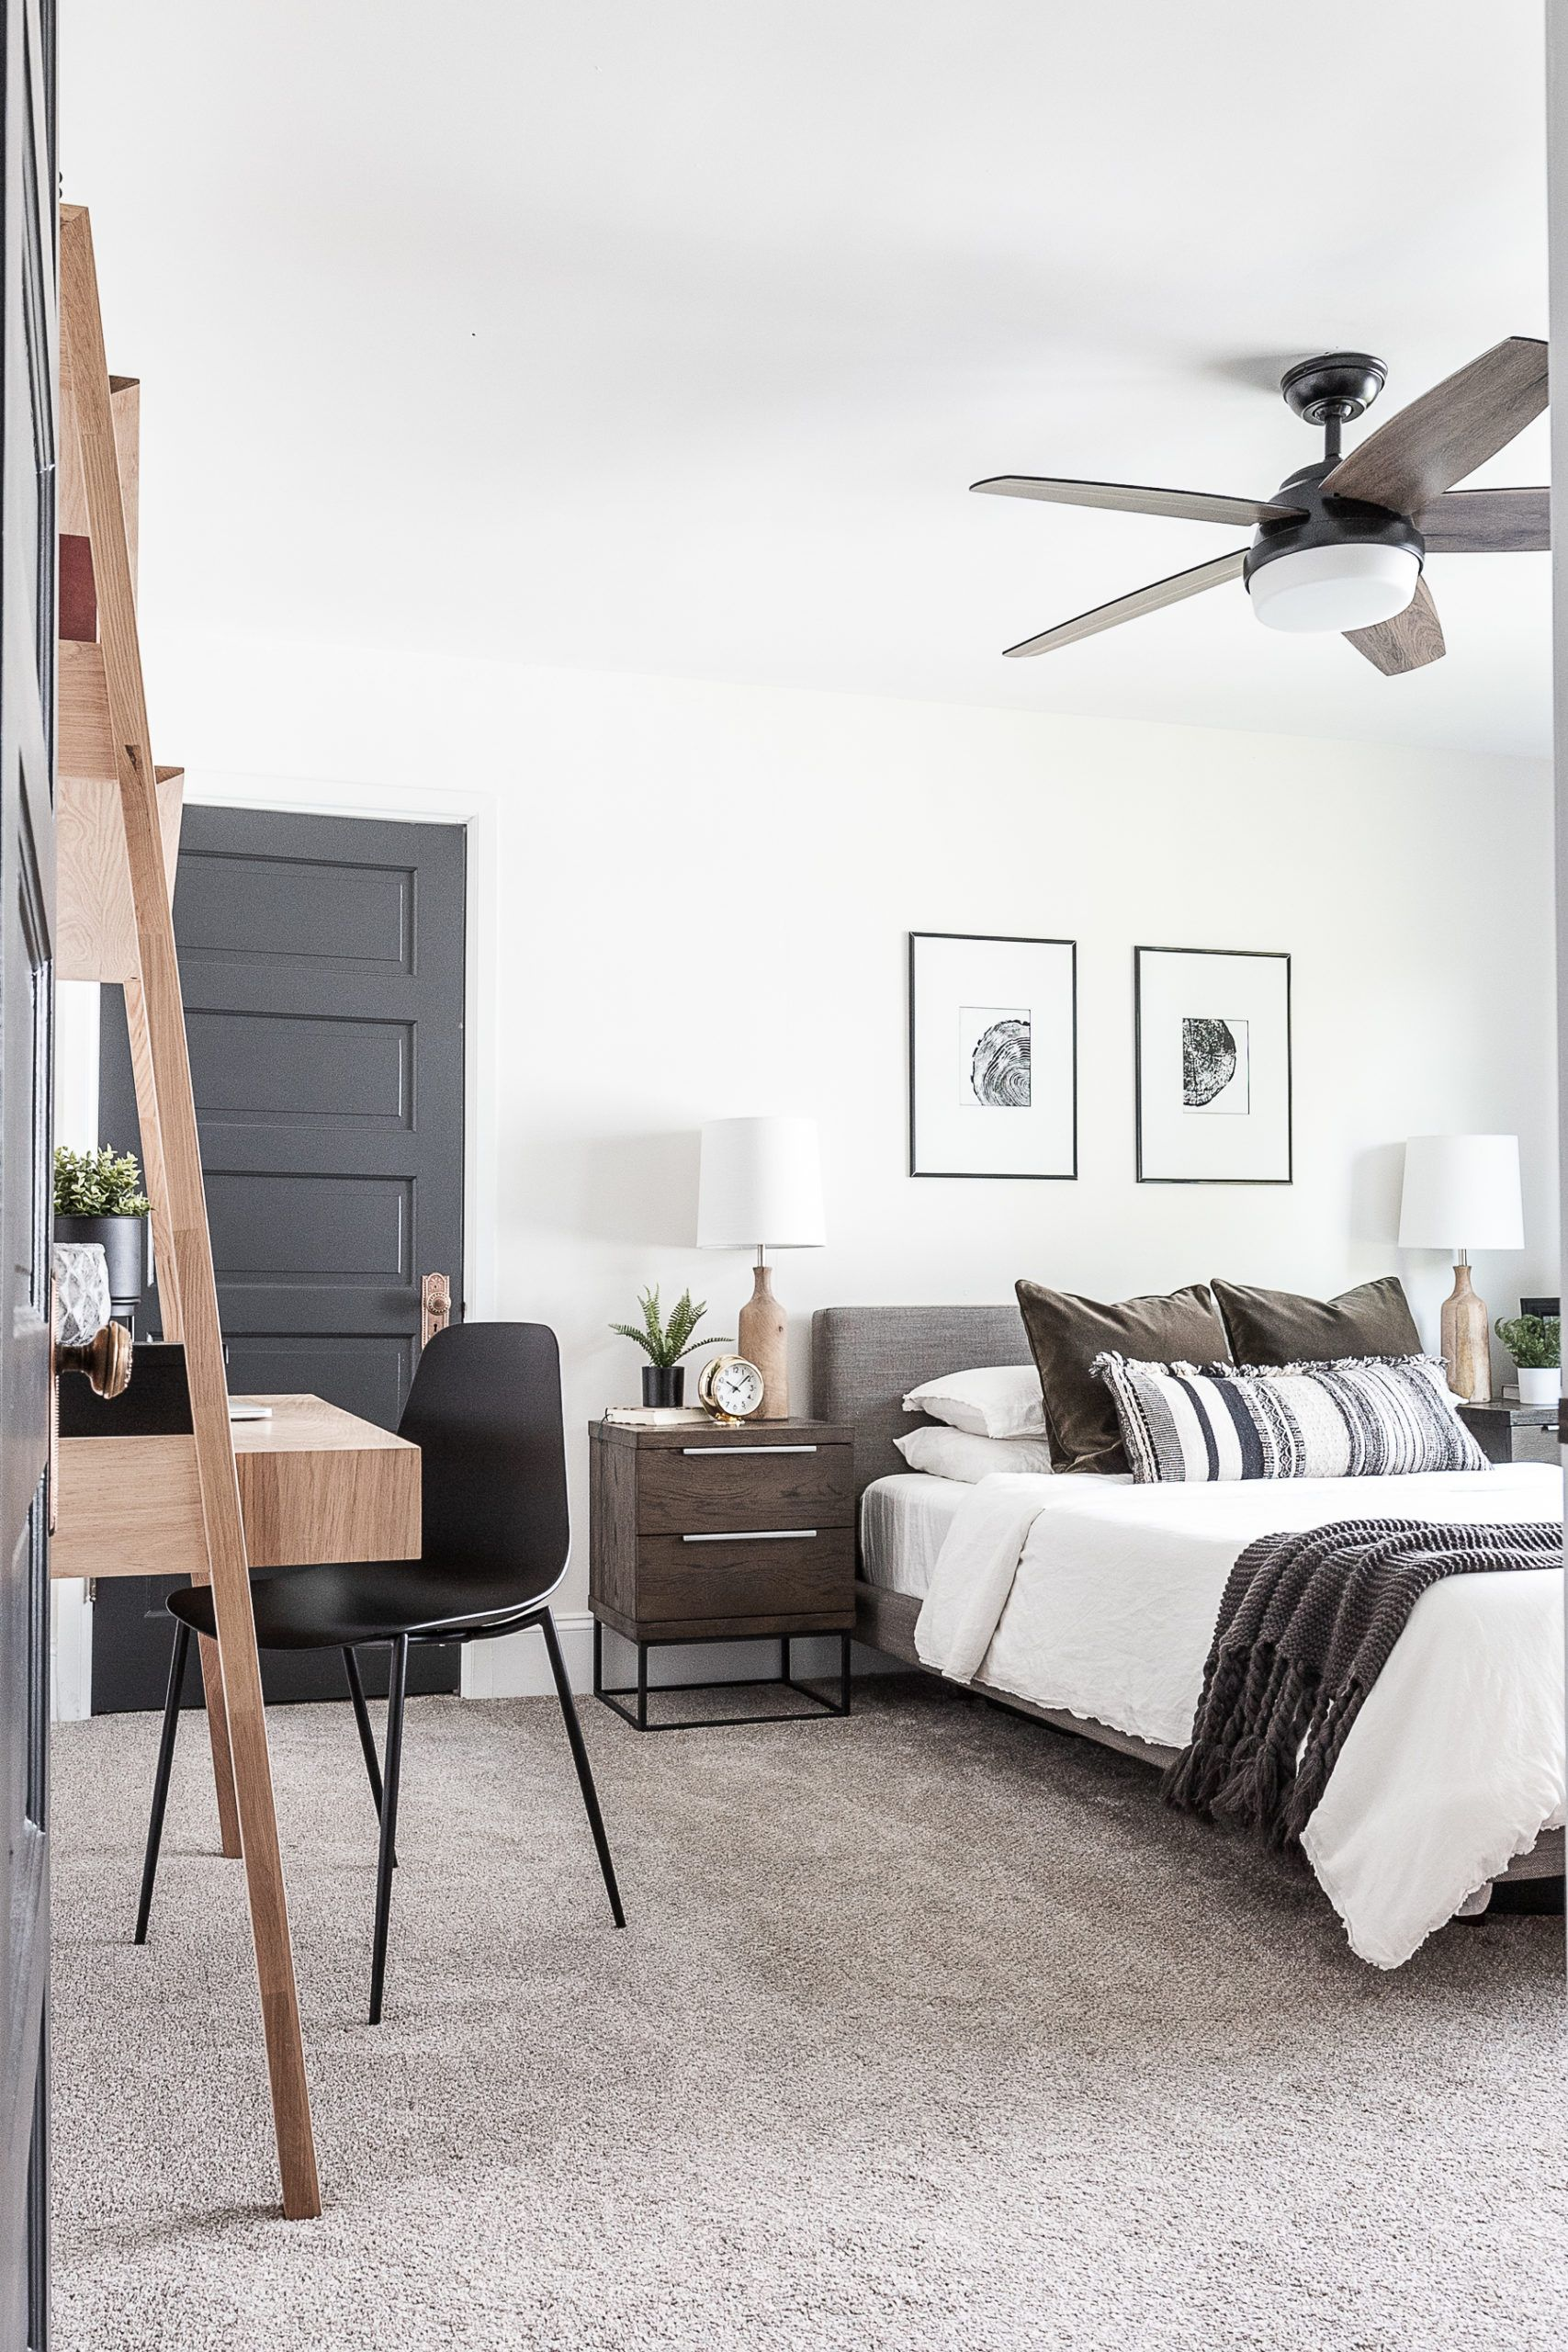 Cozy Modern Scandinavian Master Bedroom Cherished Bliss In 2020 Cheap Home Decor Home Decor Master Bedroom Furniture